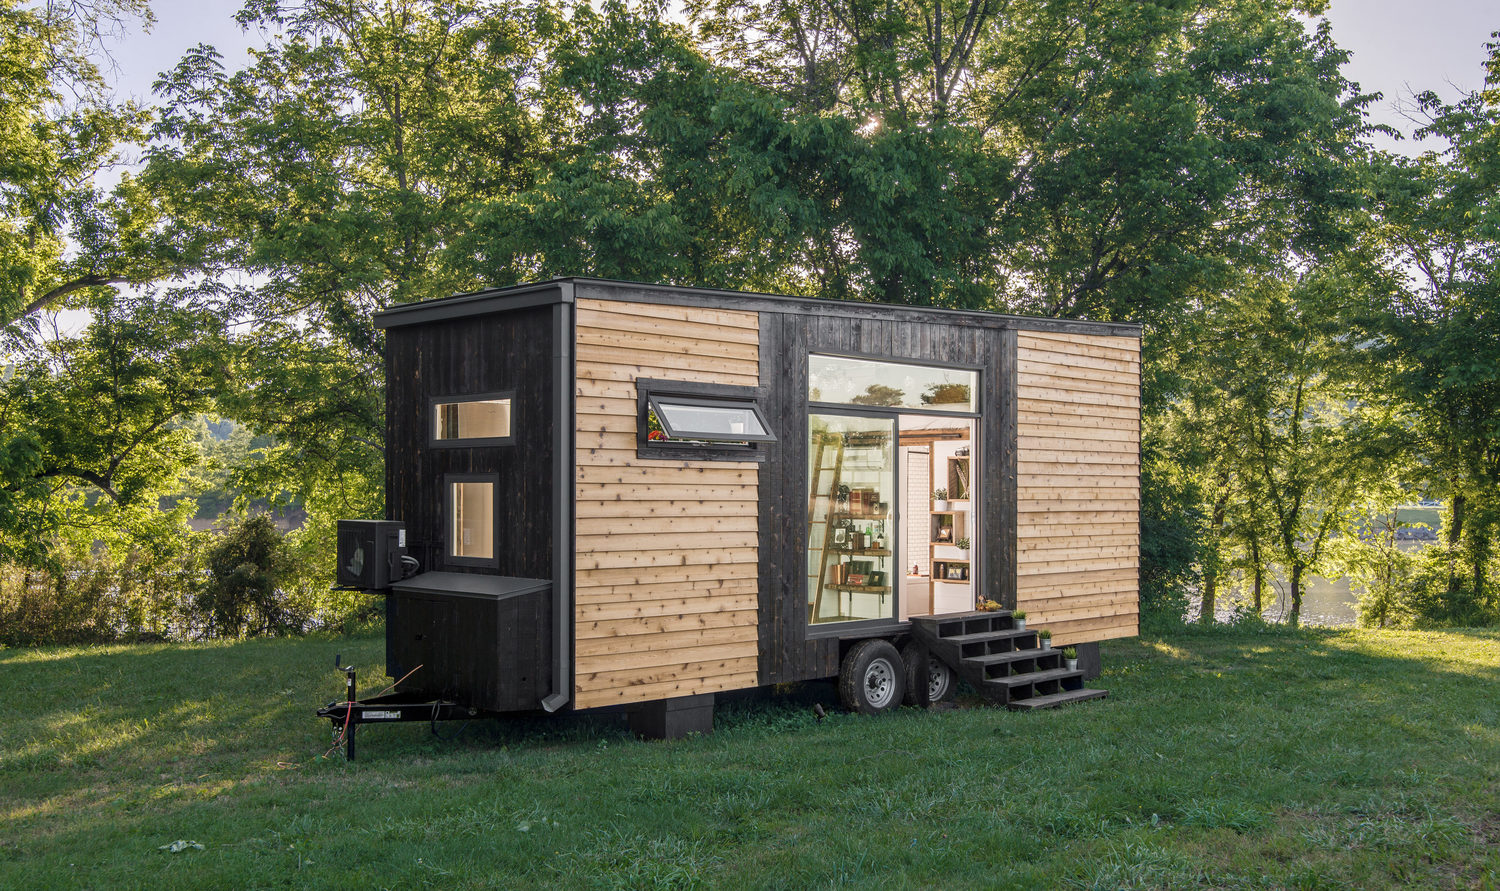 Bild: © new frontier tiny homes